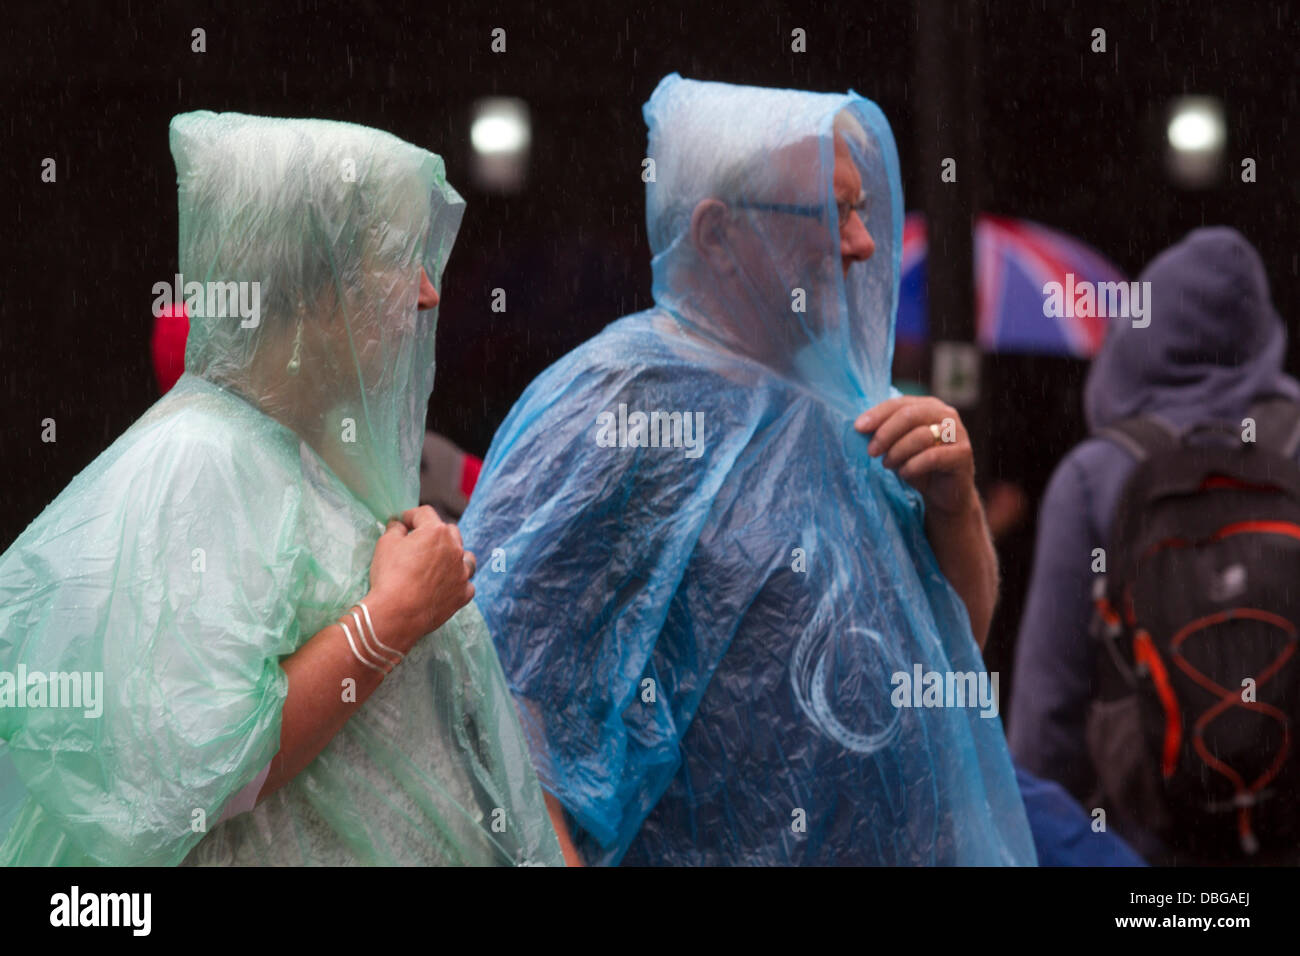 London UK. 30th July 2013.Tourists in Piccadilly circus in rain ponchos as London is hit with heavy downpours after - Stock Image